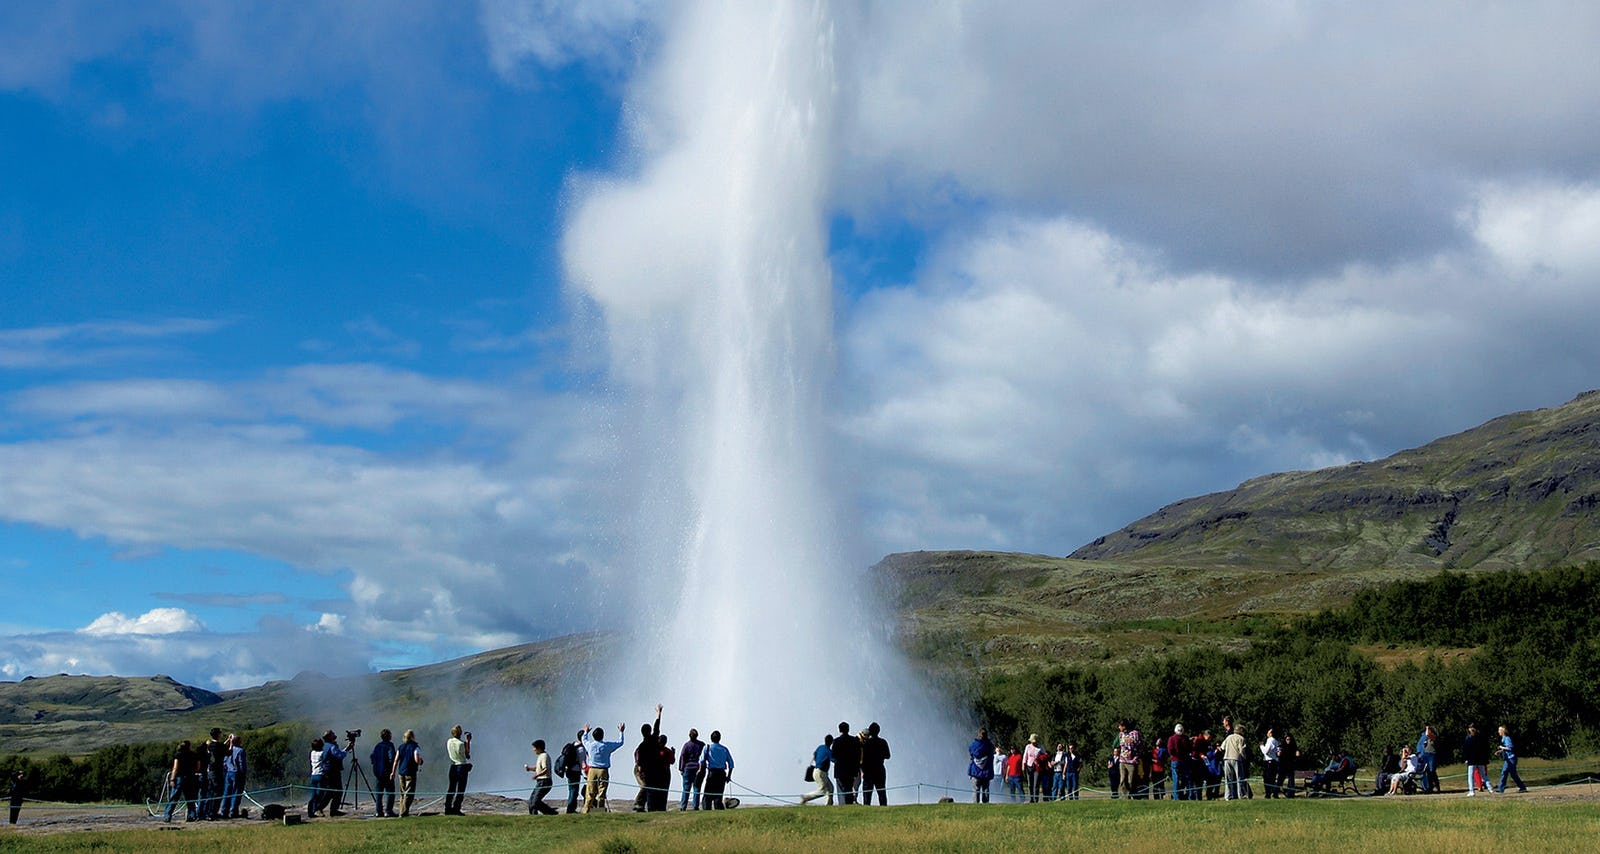 Strokkur is the most active geyser in the Geysir Geothermal area on Iceland's Golden Circle